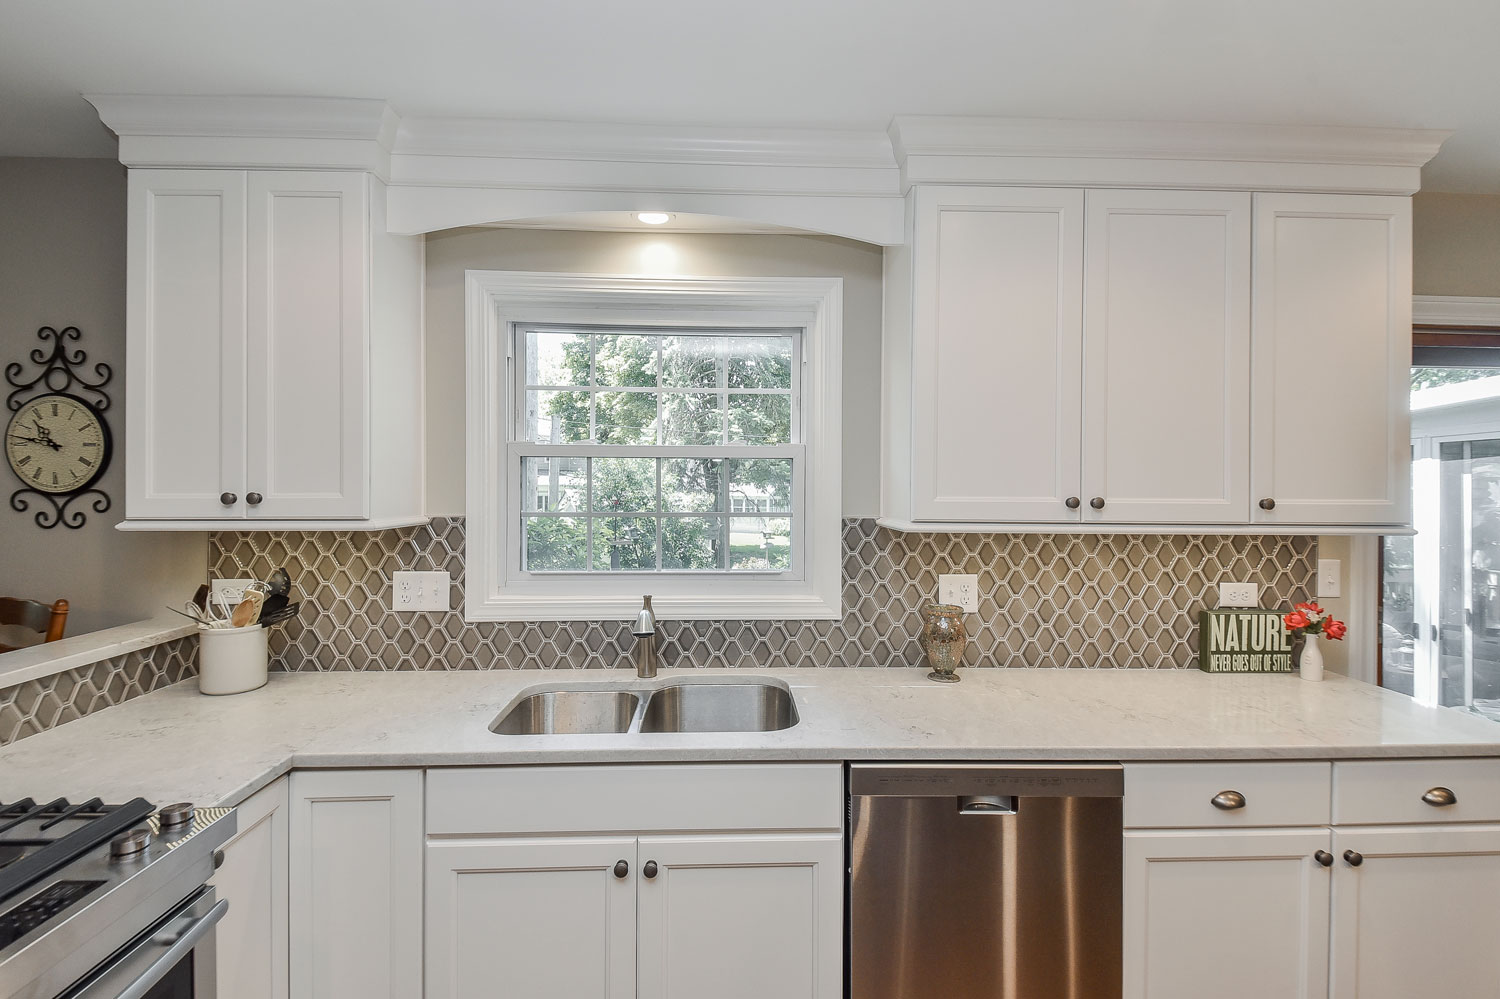 Scott & Ann\'s Kitchen Remodel Pictures | Home Remodeling Contractors ...